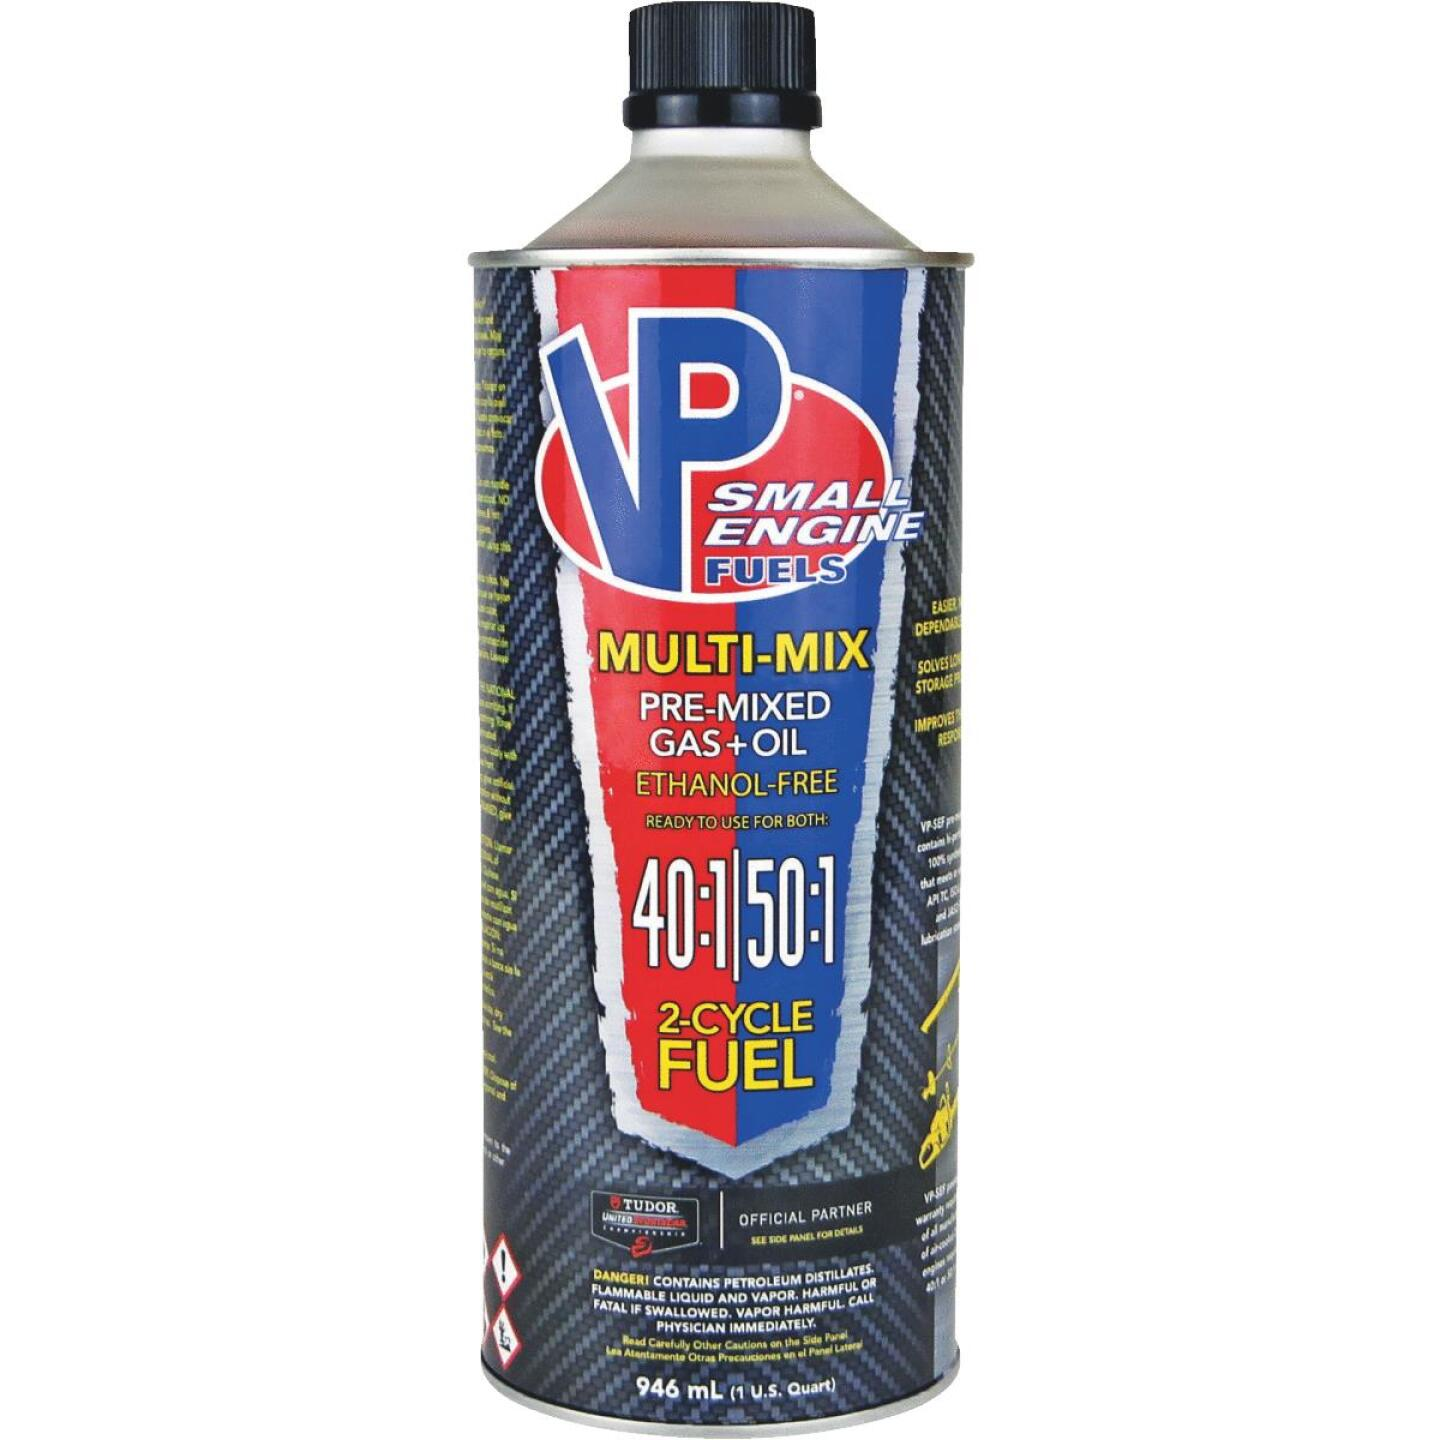 VP Small Engine Fuels 32 Oz. 40:1/50:1 Ethanol-Free Multi-Mix Gas & Oil Pre-Mix Image 1